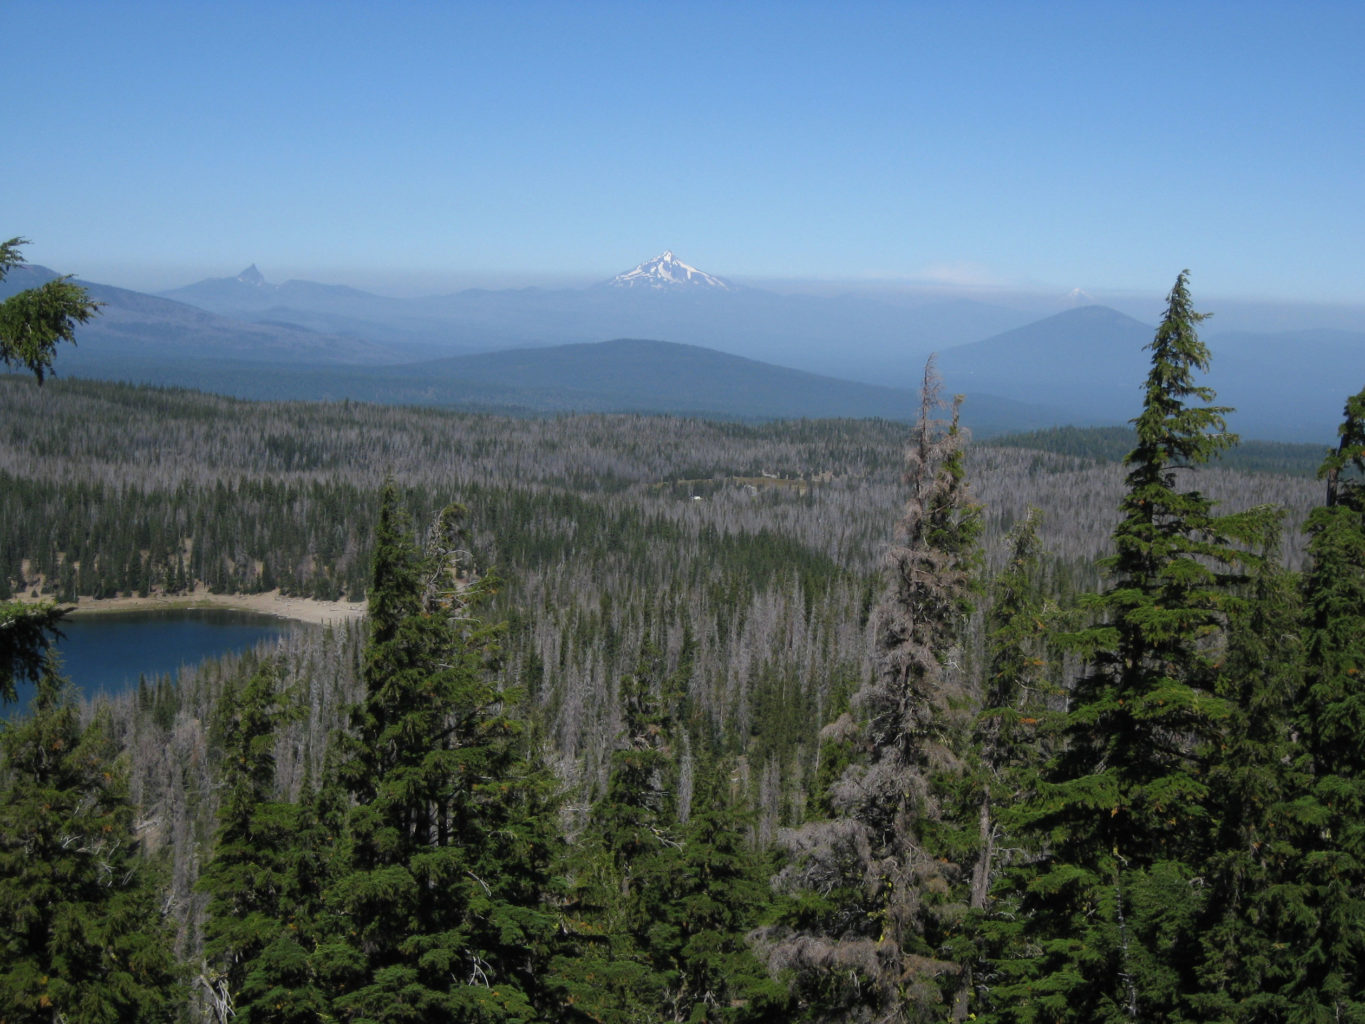 View from Tam McArthur Rim of lodgepole pine and whitebark pine killed by mountain pine beetle within the prior 10 years